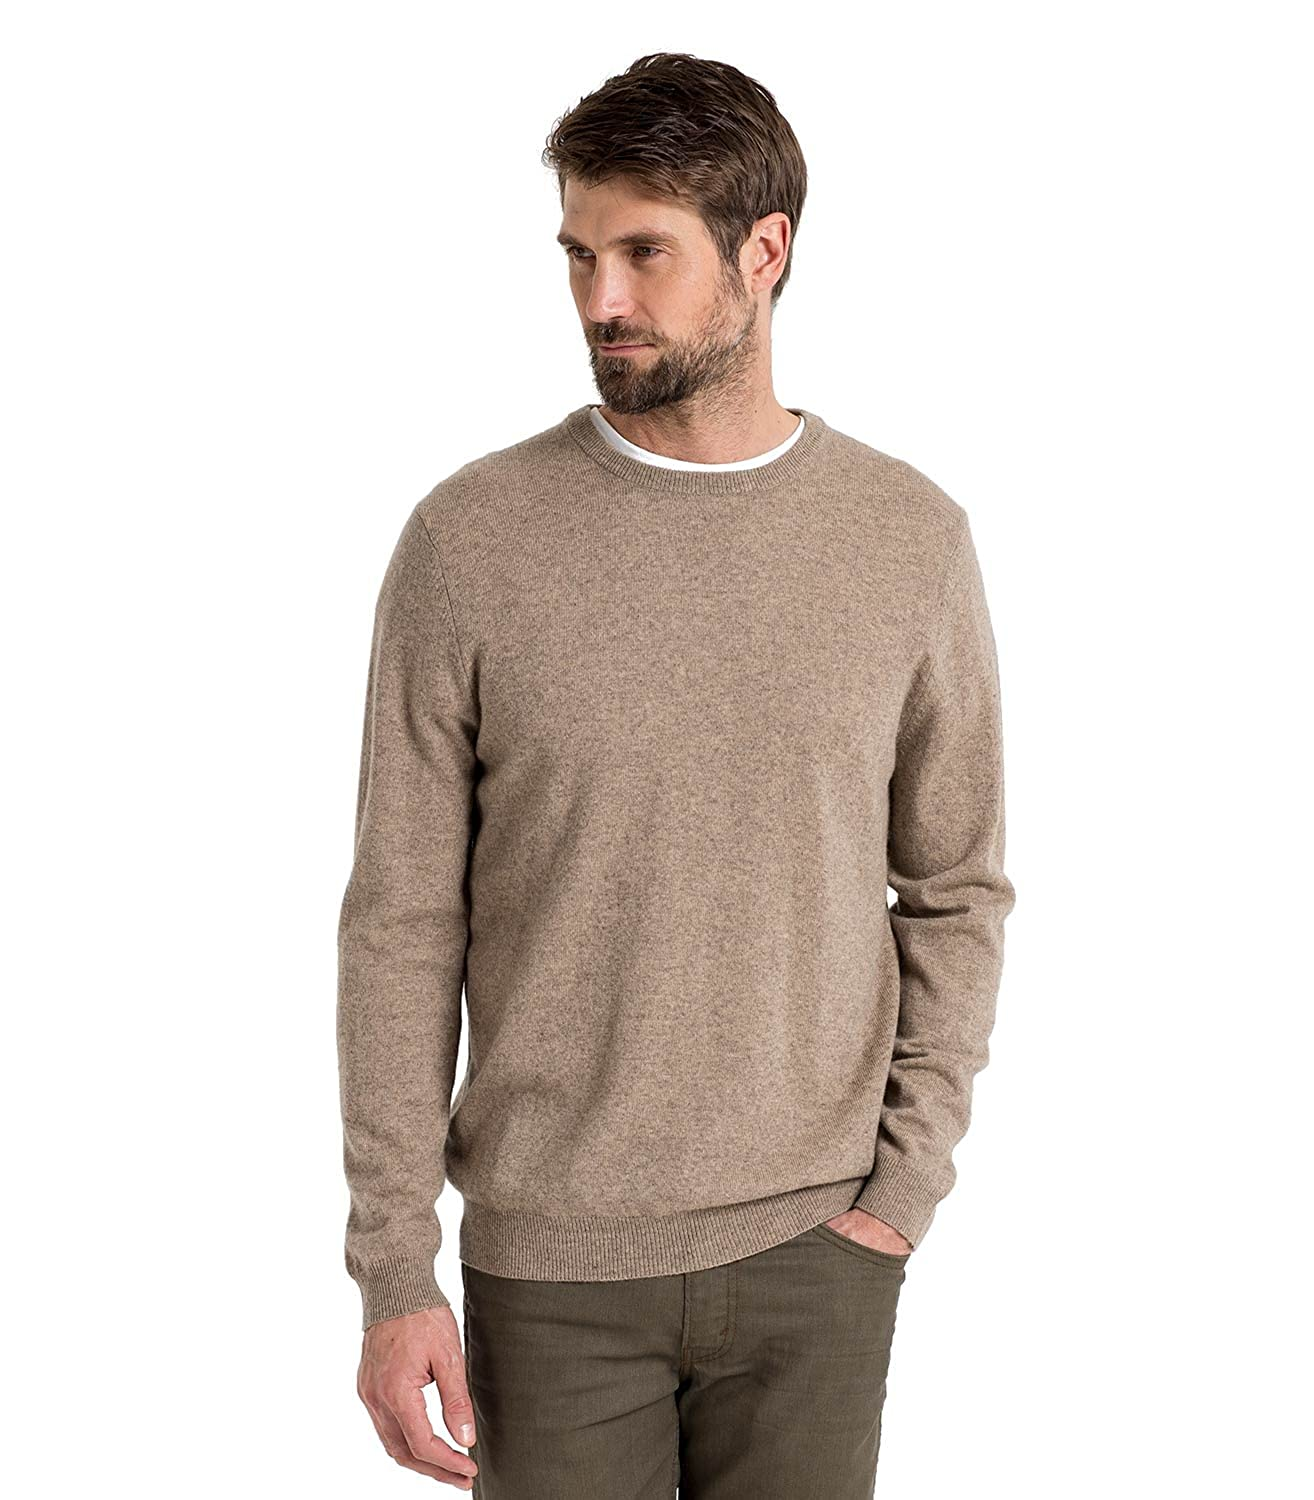 WoolOvers Mens Cashmere and Merino Crew Neck Sweater Pepper, L